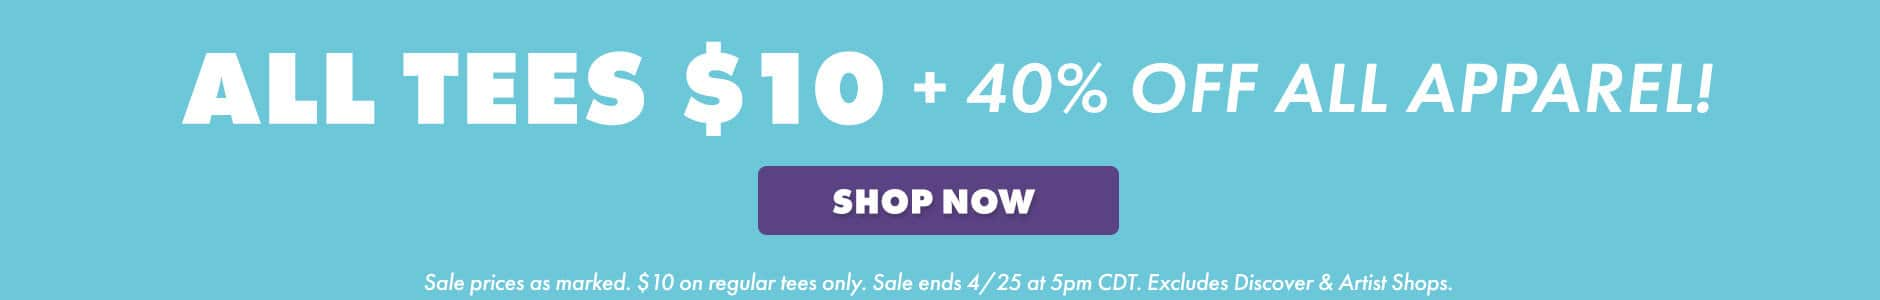 Shop $10 Tees and 40% off Apparel!